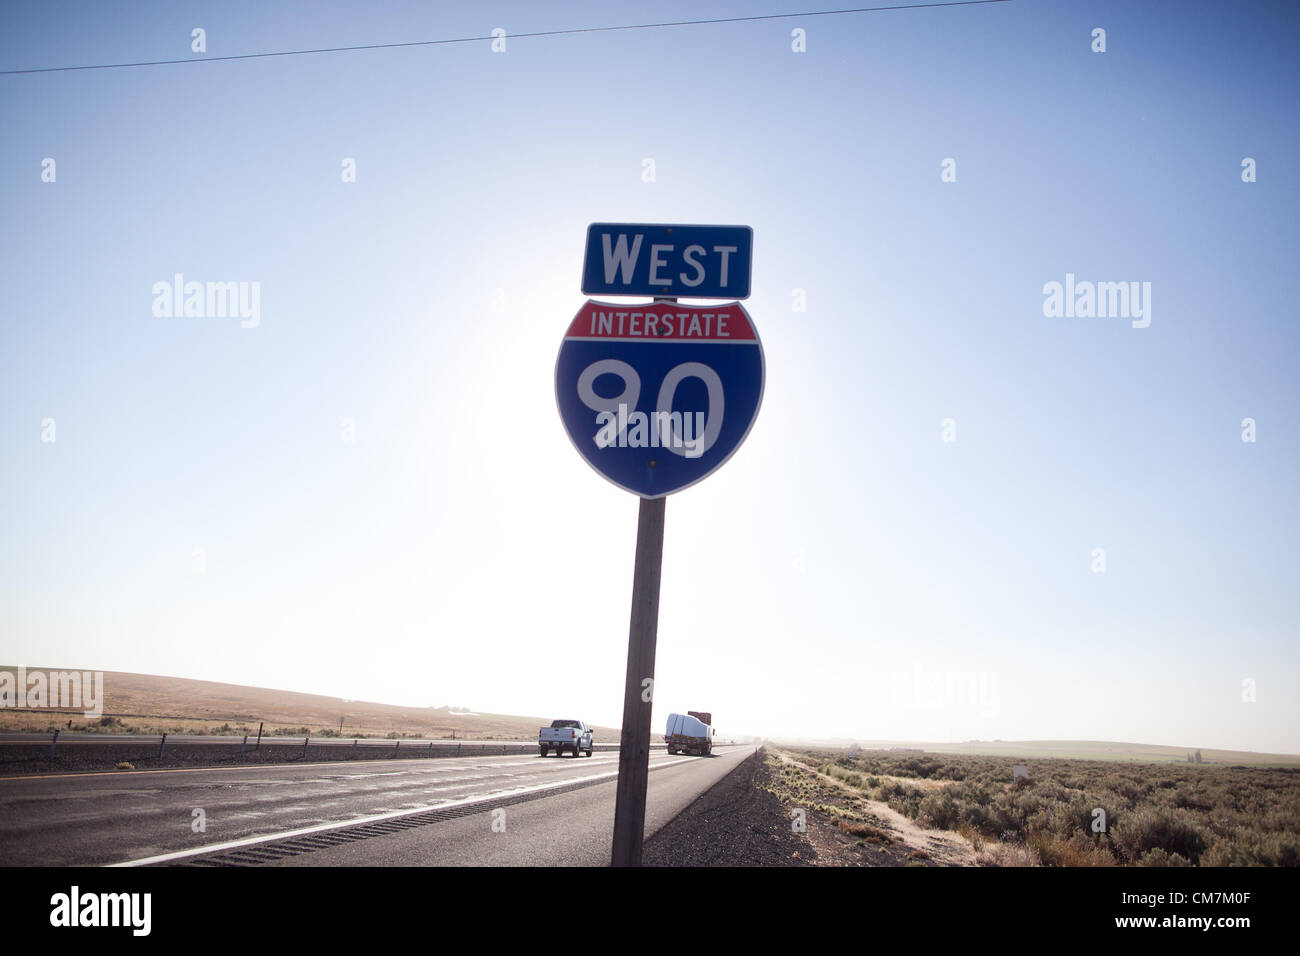 Aug. 23, 2012 - Washington, U.S - A Interstate 90 sign in Washington I Map Us With Interstates on us route 90 map, wi i-90 map, i-90 minnesota map, hwy 90 map, i-94 montana weather map, i-90 road map, i 90 freeway map, i 90 toll map, i 90 highway, us i-90 map, i 90 east map,